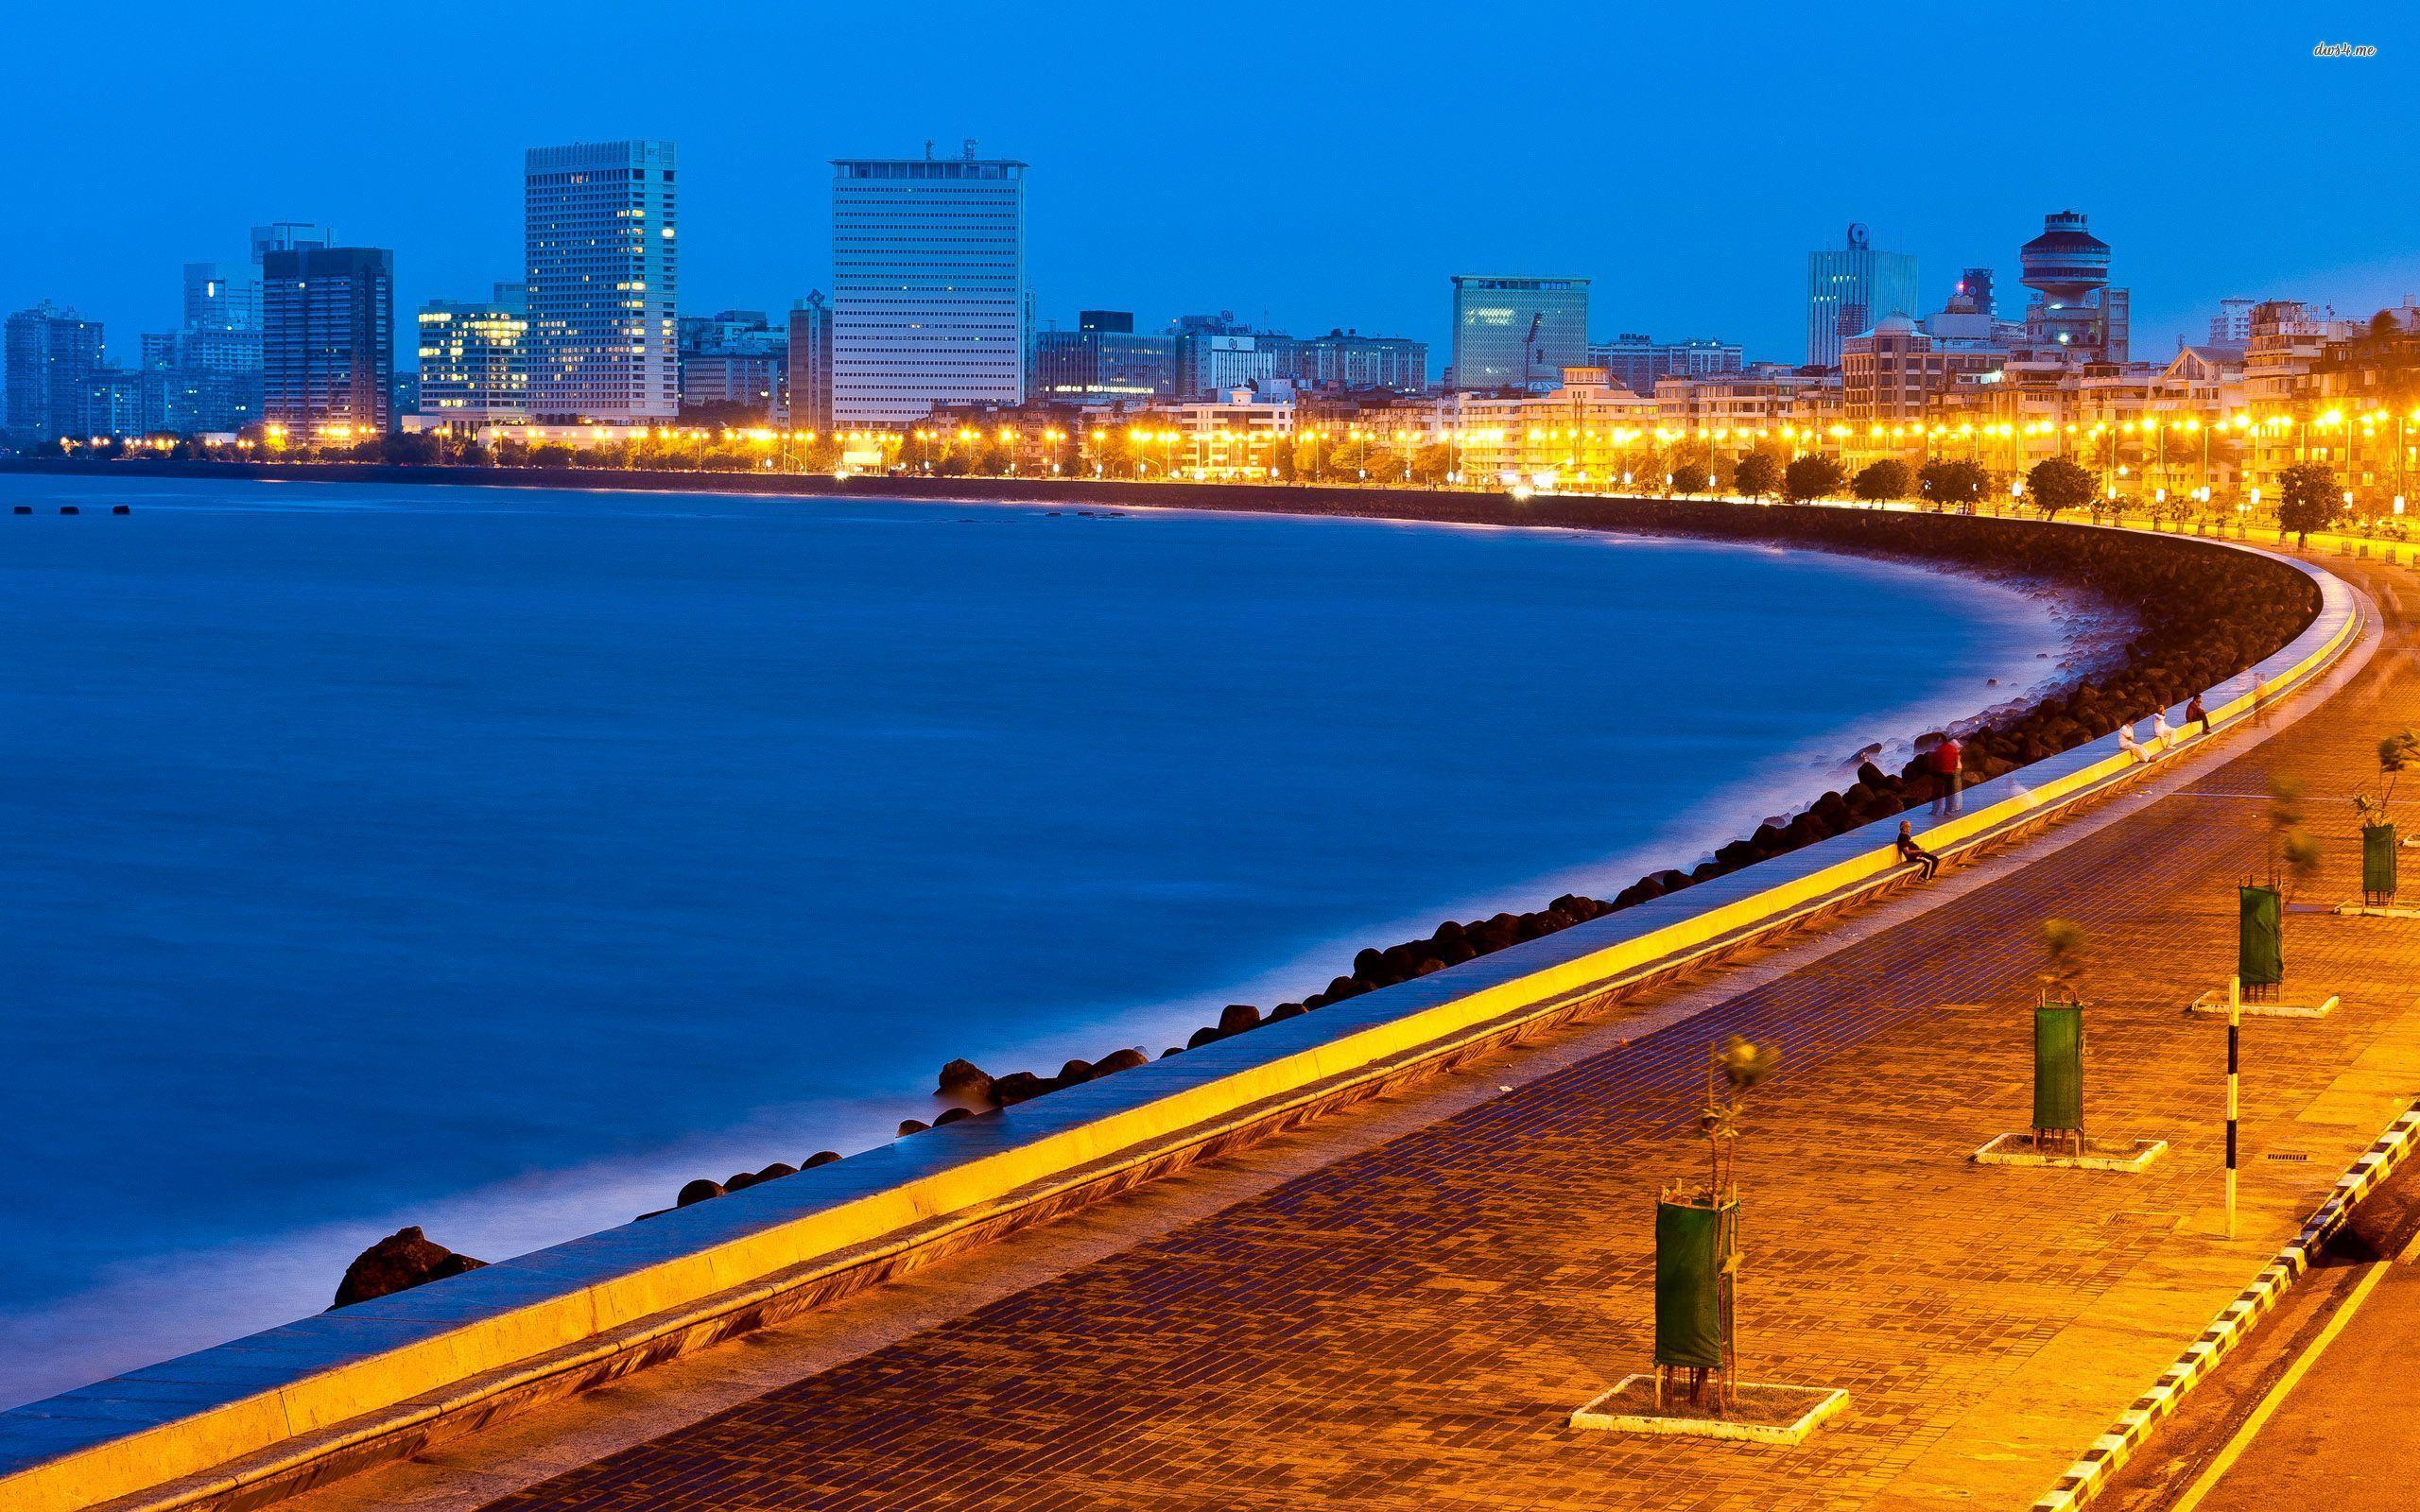 Marine Drive in Mumbai wallpapers